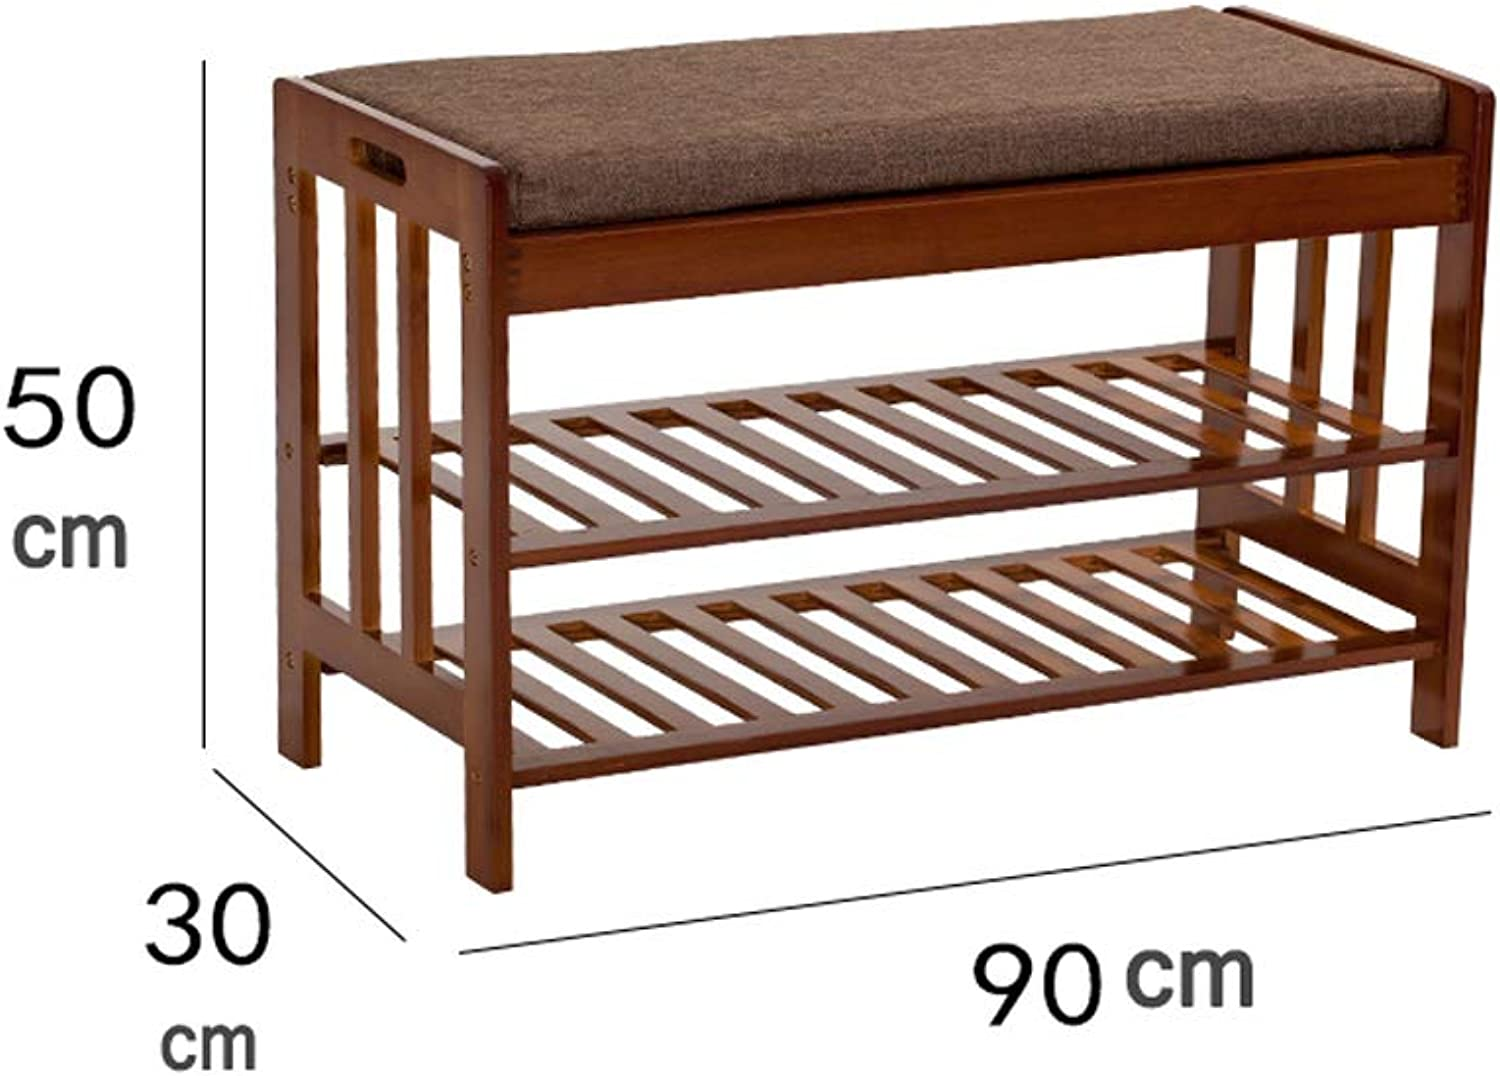 shoes Rack Home 50  30  90cm Solid Wood shoes Storage Stool Assembly shoes Rack Change shoes Bench (color   C)